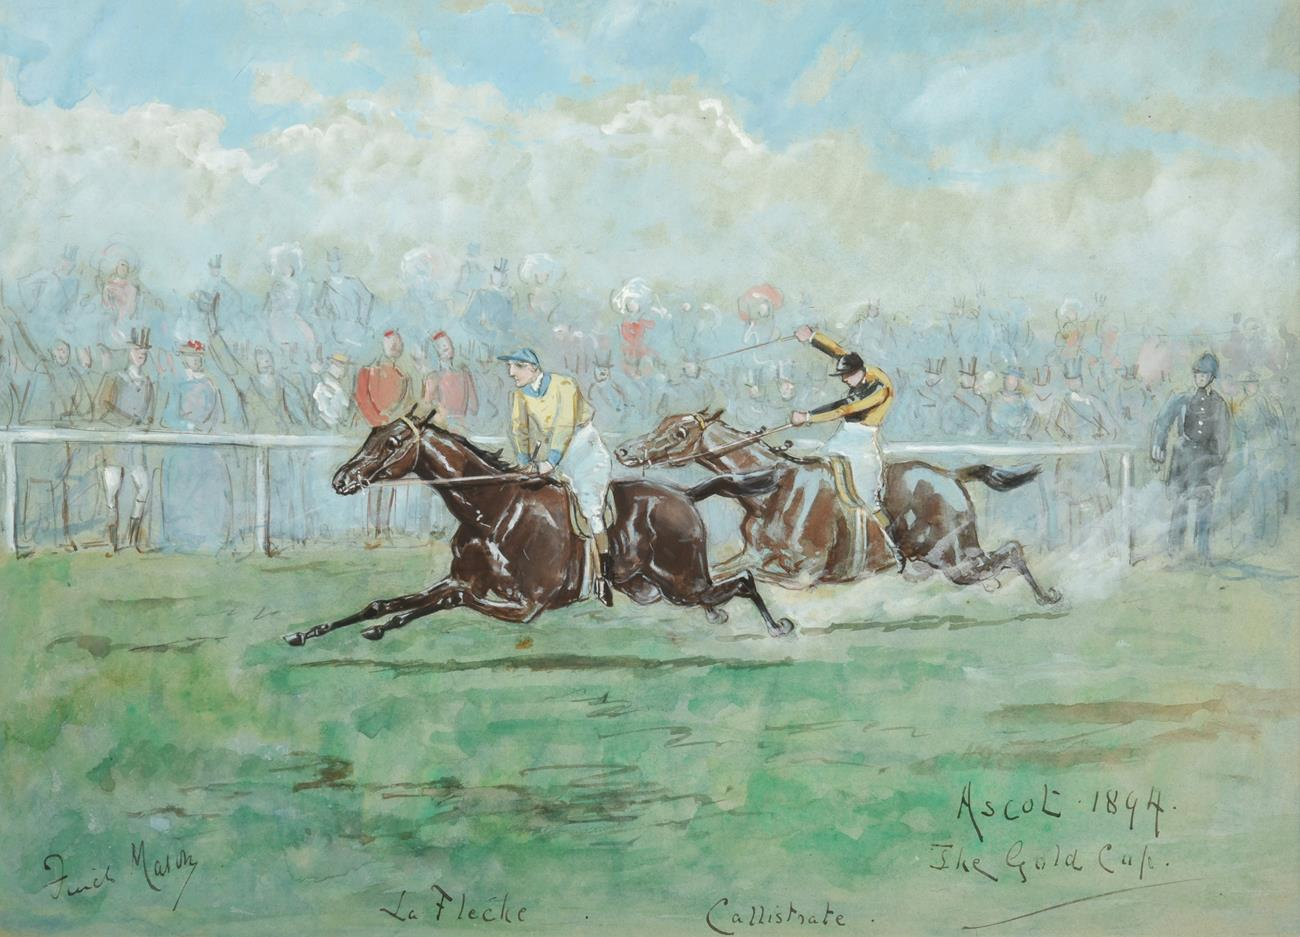 George Finch Mason (1850-1915) Ascot the Gold Cup, 1894 Signed and inscribed, watercolour,